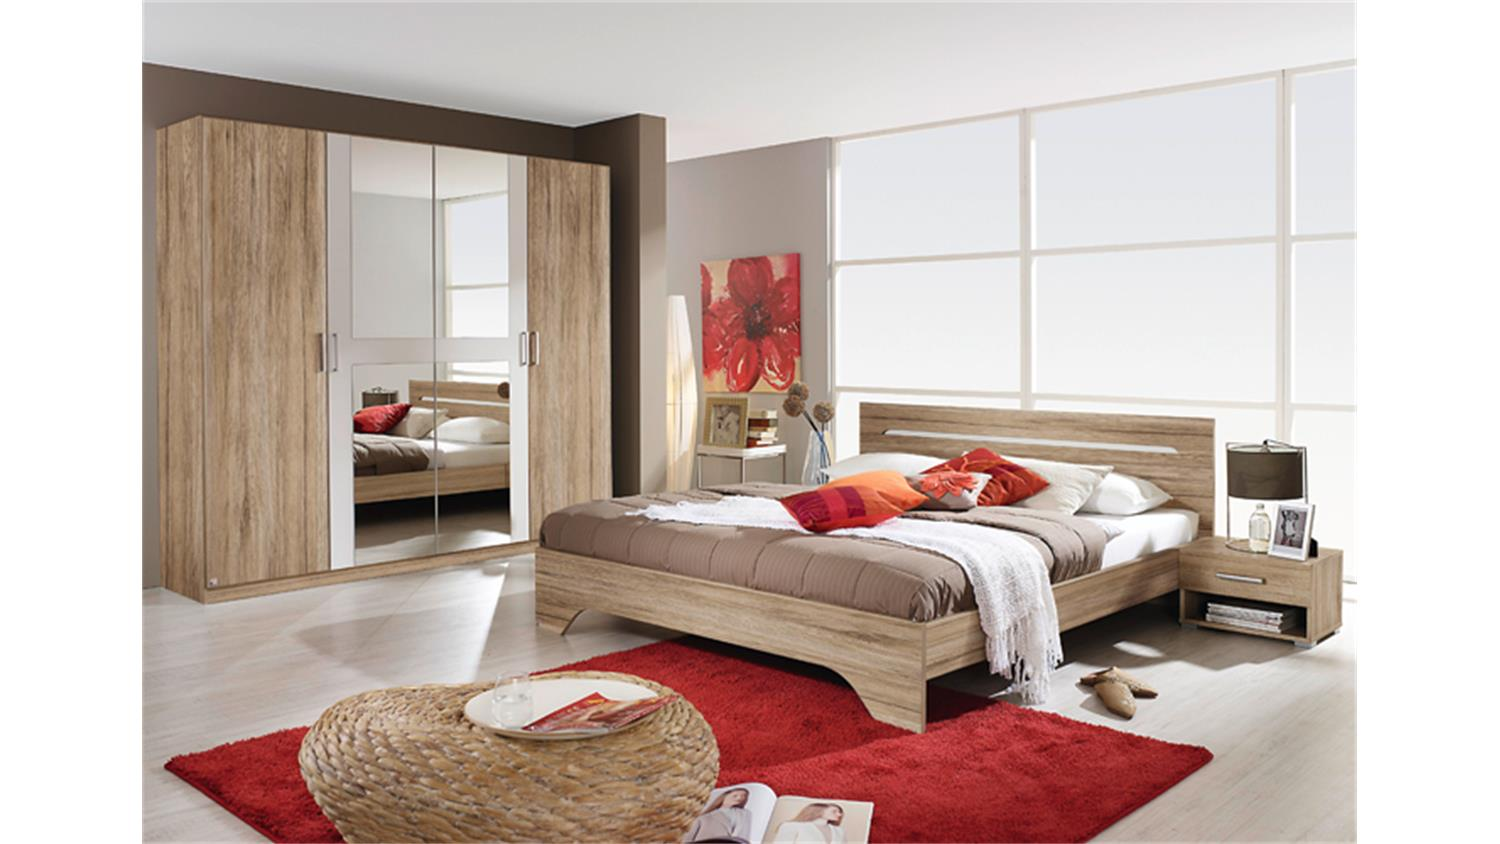 chambre a coucher tapisserie maroc. Black Bedroom Furniture Sets. Home Design Ideas